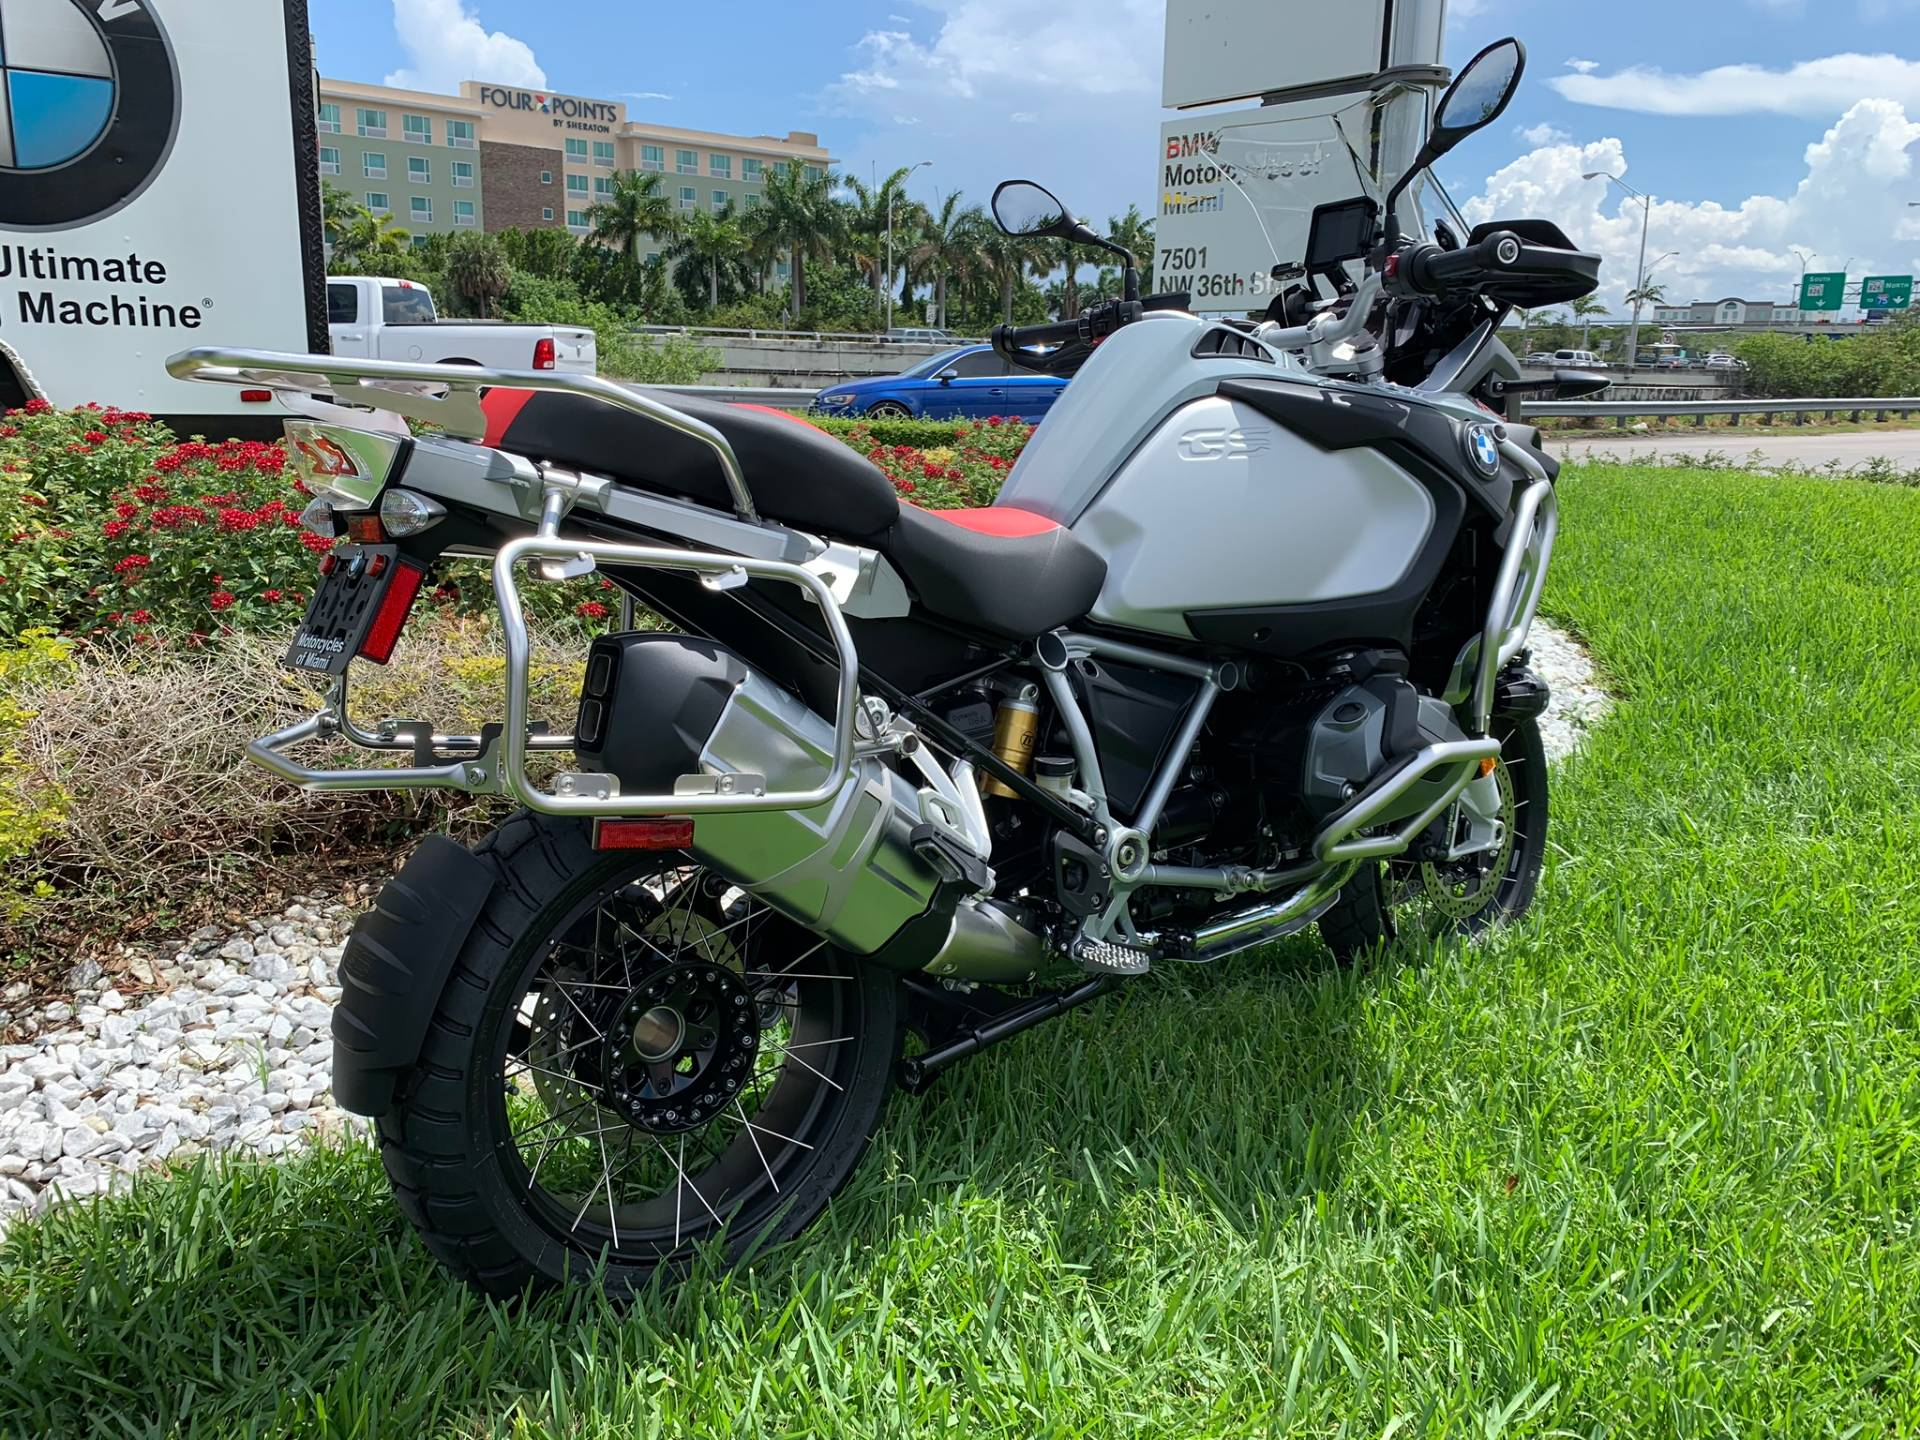 New 2019 BMW R 1250 GSA for sale, New BMW for sale R 1250GSA, New BMW Motorcycle R1250GSA for sale, new BMW 1250GS Adventure, R1250GS Adventure, Adventure. BMW Motorcycles of Miami, Motorcycles of Miami, Motorcycles Miami, New Motorcycles, Used Motorcycles, pre-owned. #BMWMotorcyclesOfMiami #Motorcy - Photo 23